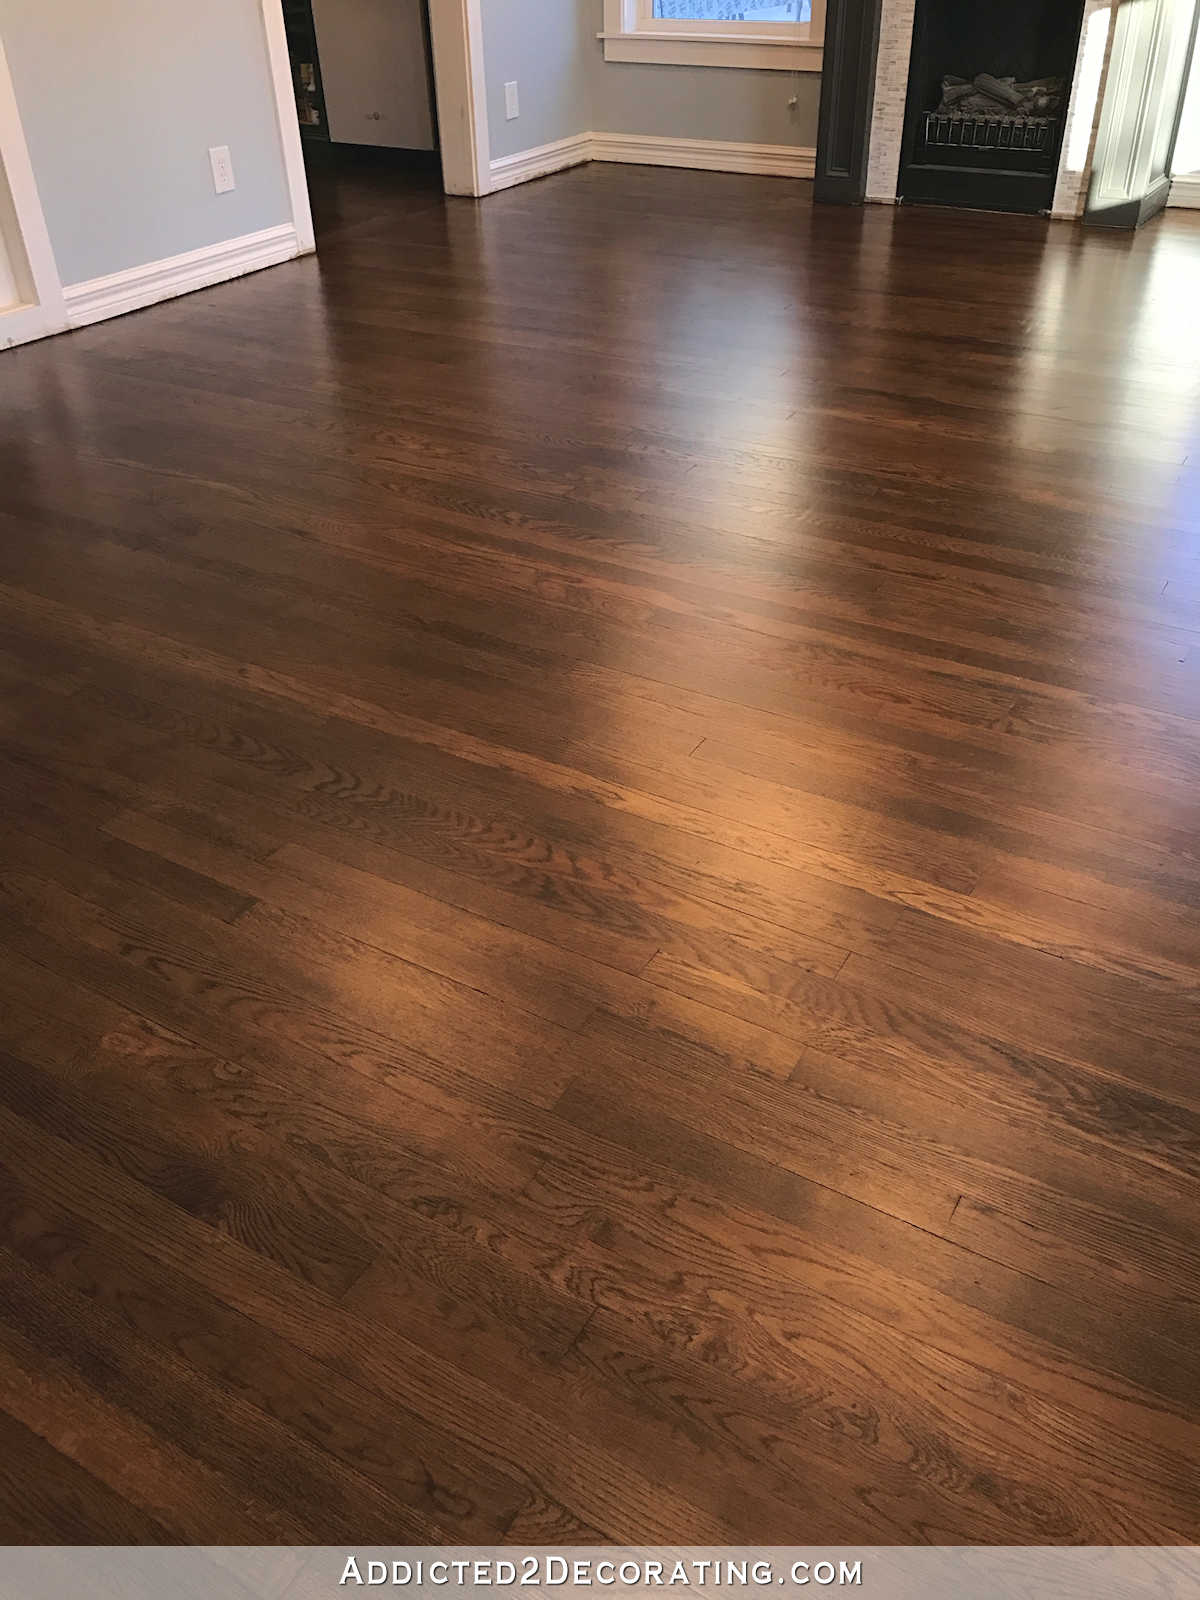 wooden floors refinished red oak hardwood floors - entryway and living room JFYWRQZ